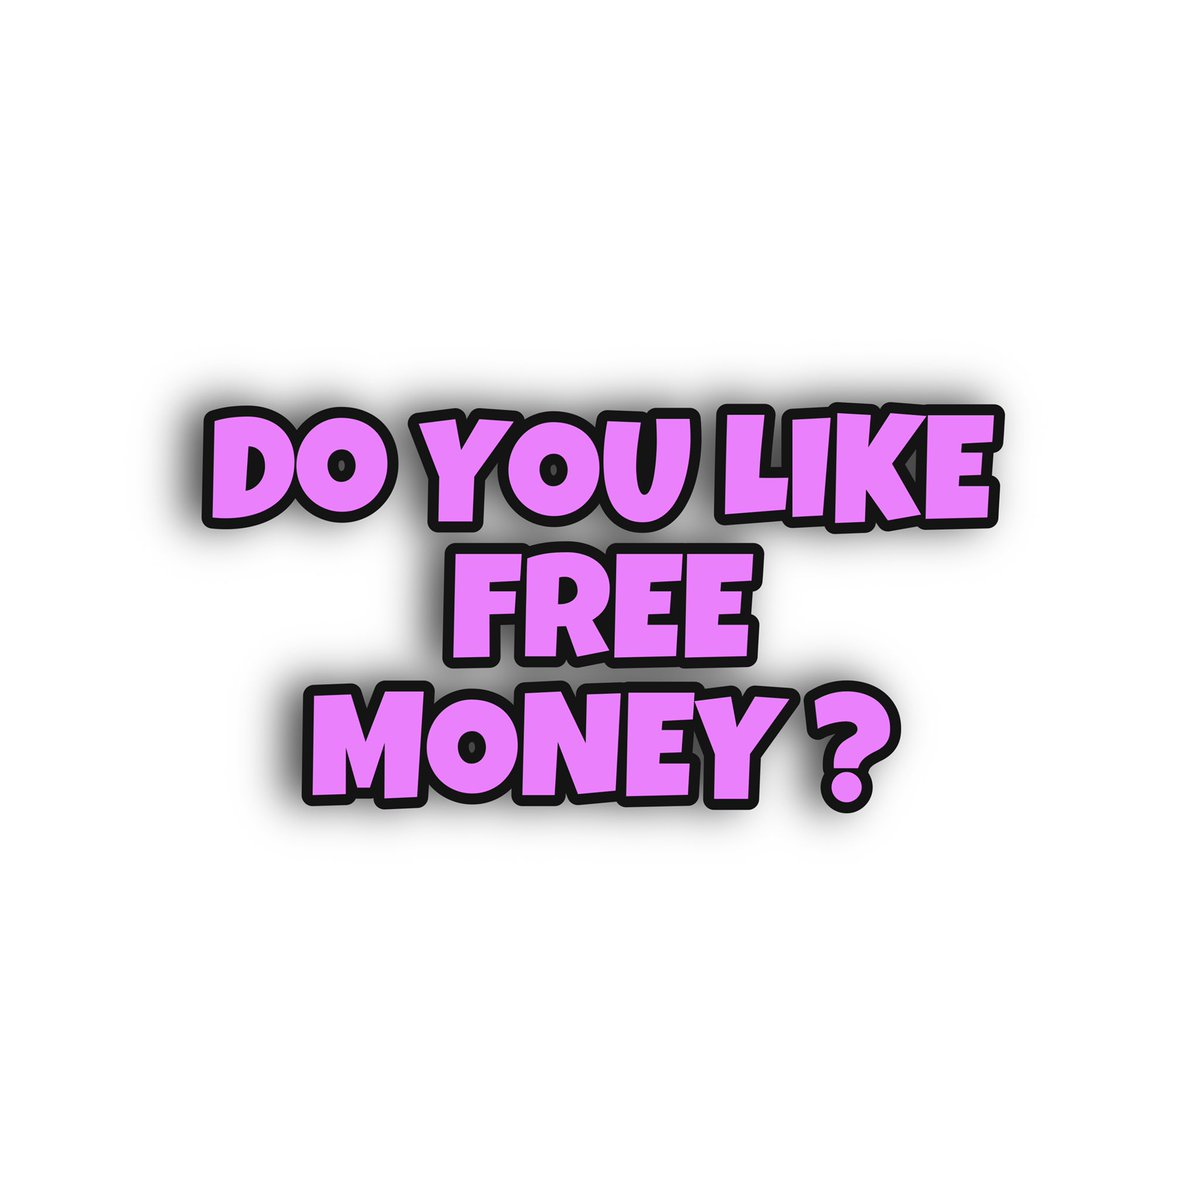 Do you like free money ?  #free #life #new #money #online #wealth #global #play #us #feel #win #today #the #support #easy #cheap #we #enjoylife #share #motivation #giveaway #india #usa #smile #fun #girl #followme #pincity #pin